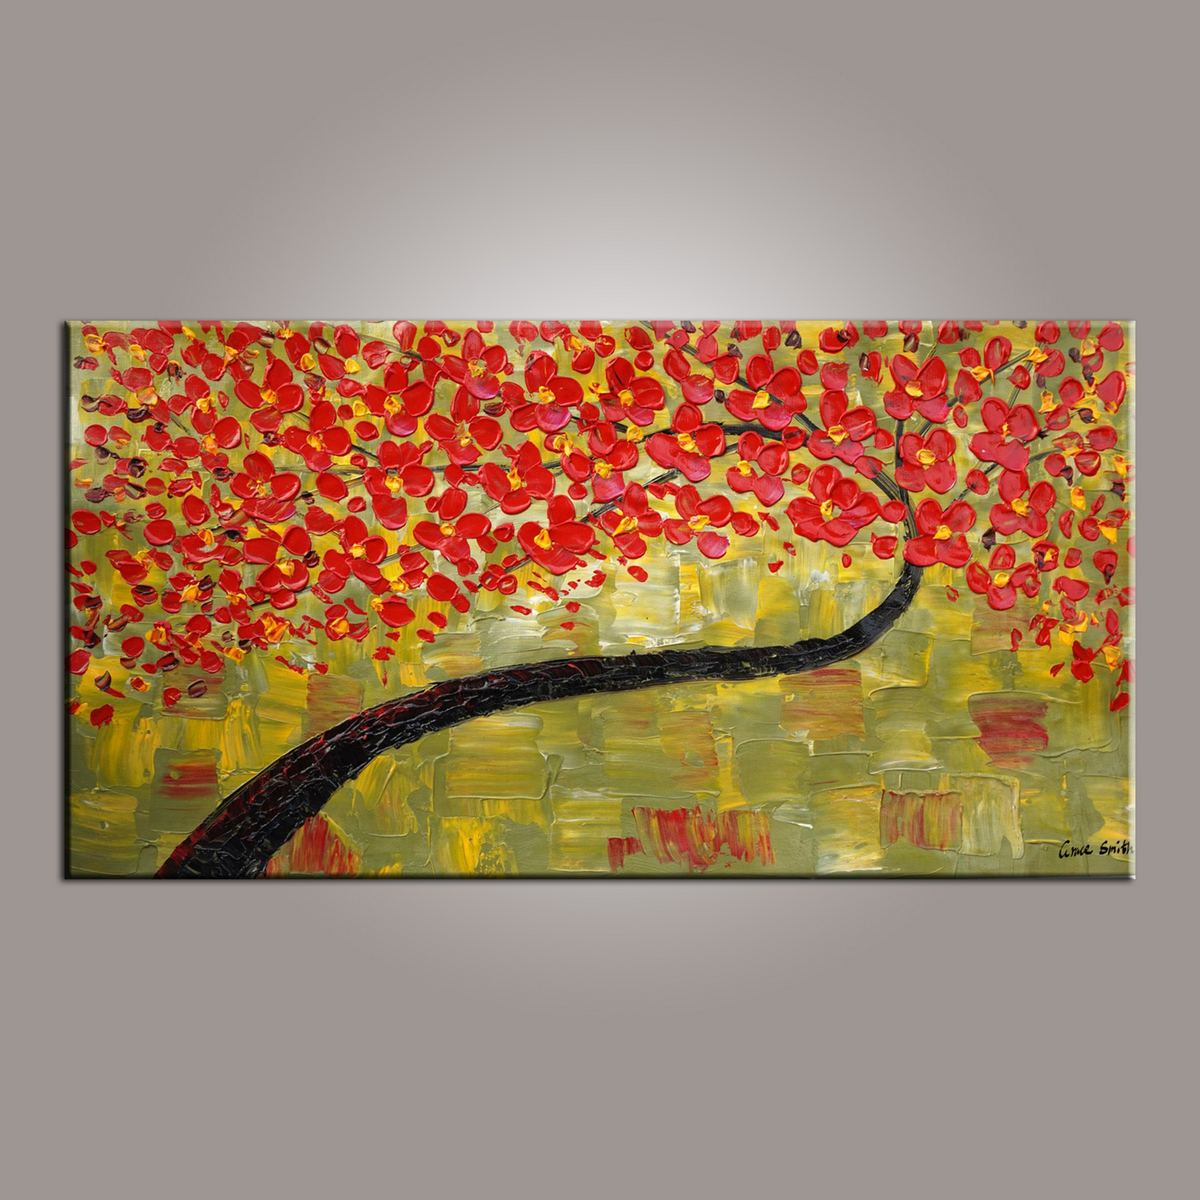 Painting on Sale, Canvas Art, Red Flower Tree Painting, Abstract Art Painting, Dining Room Wall Art, Art on Canvas, Modern Art, Contemporary Art